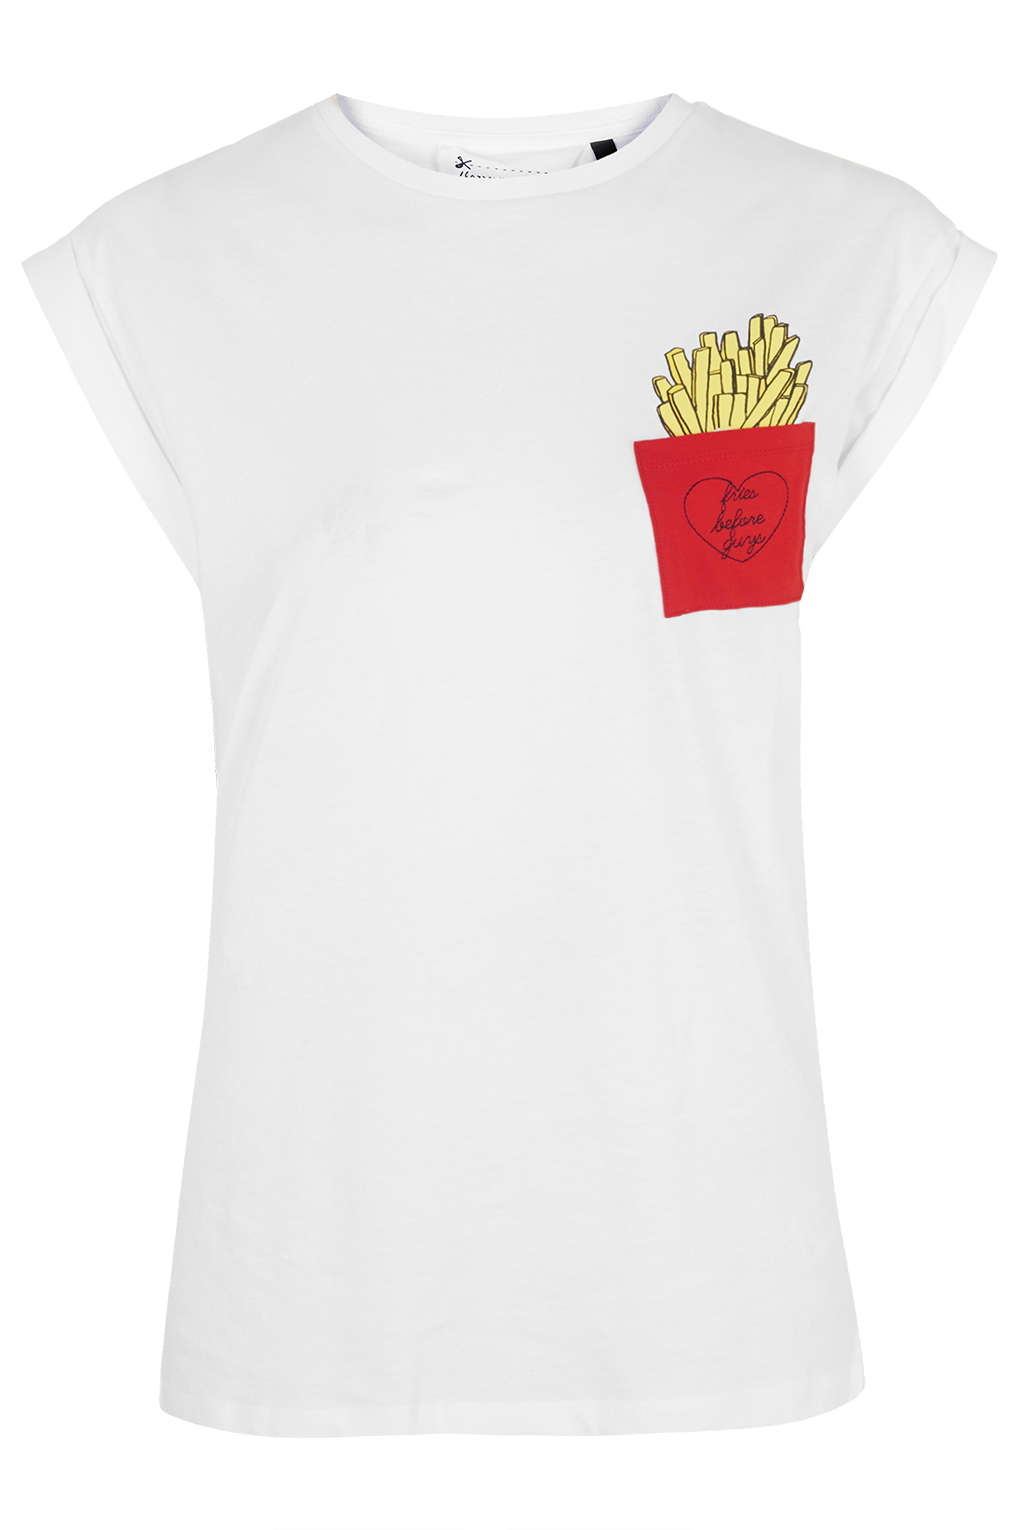 fries tee - topshop